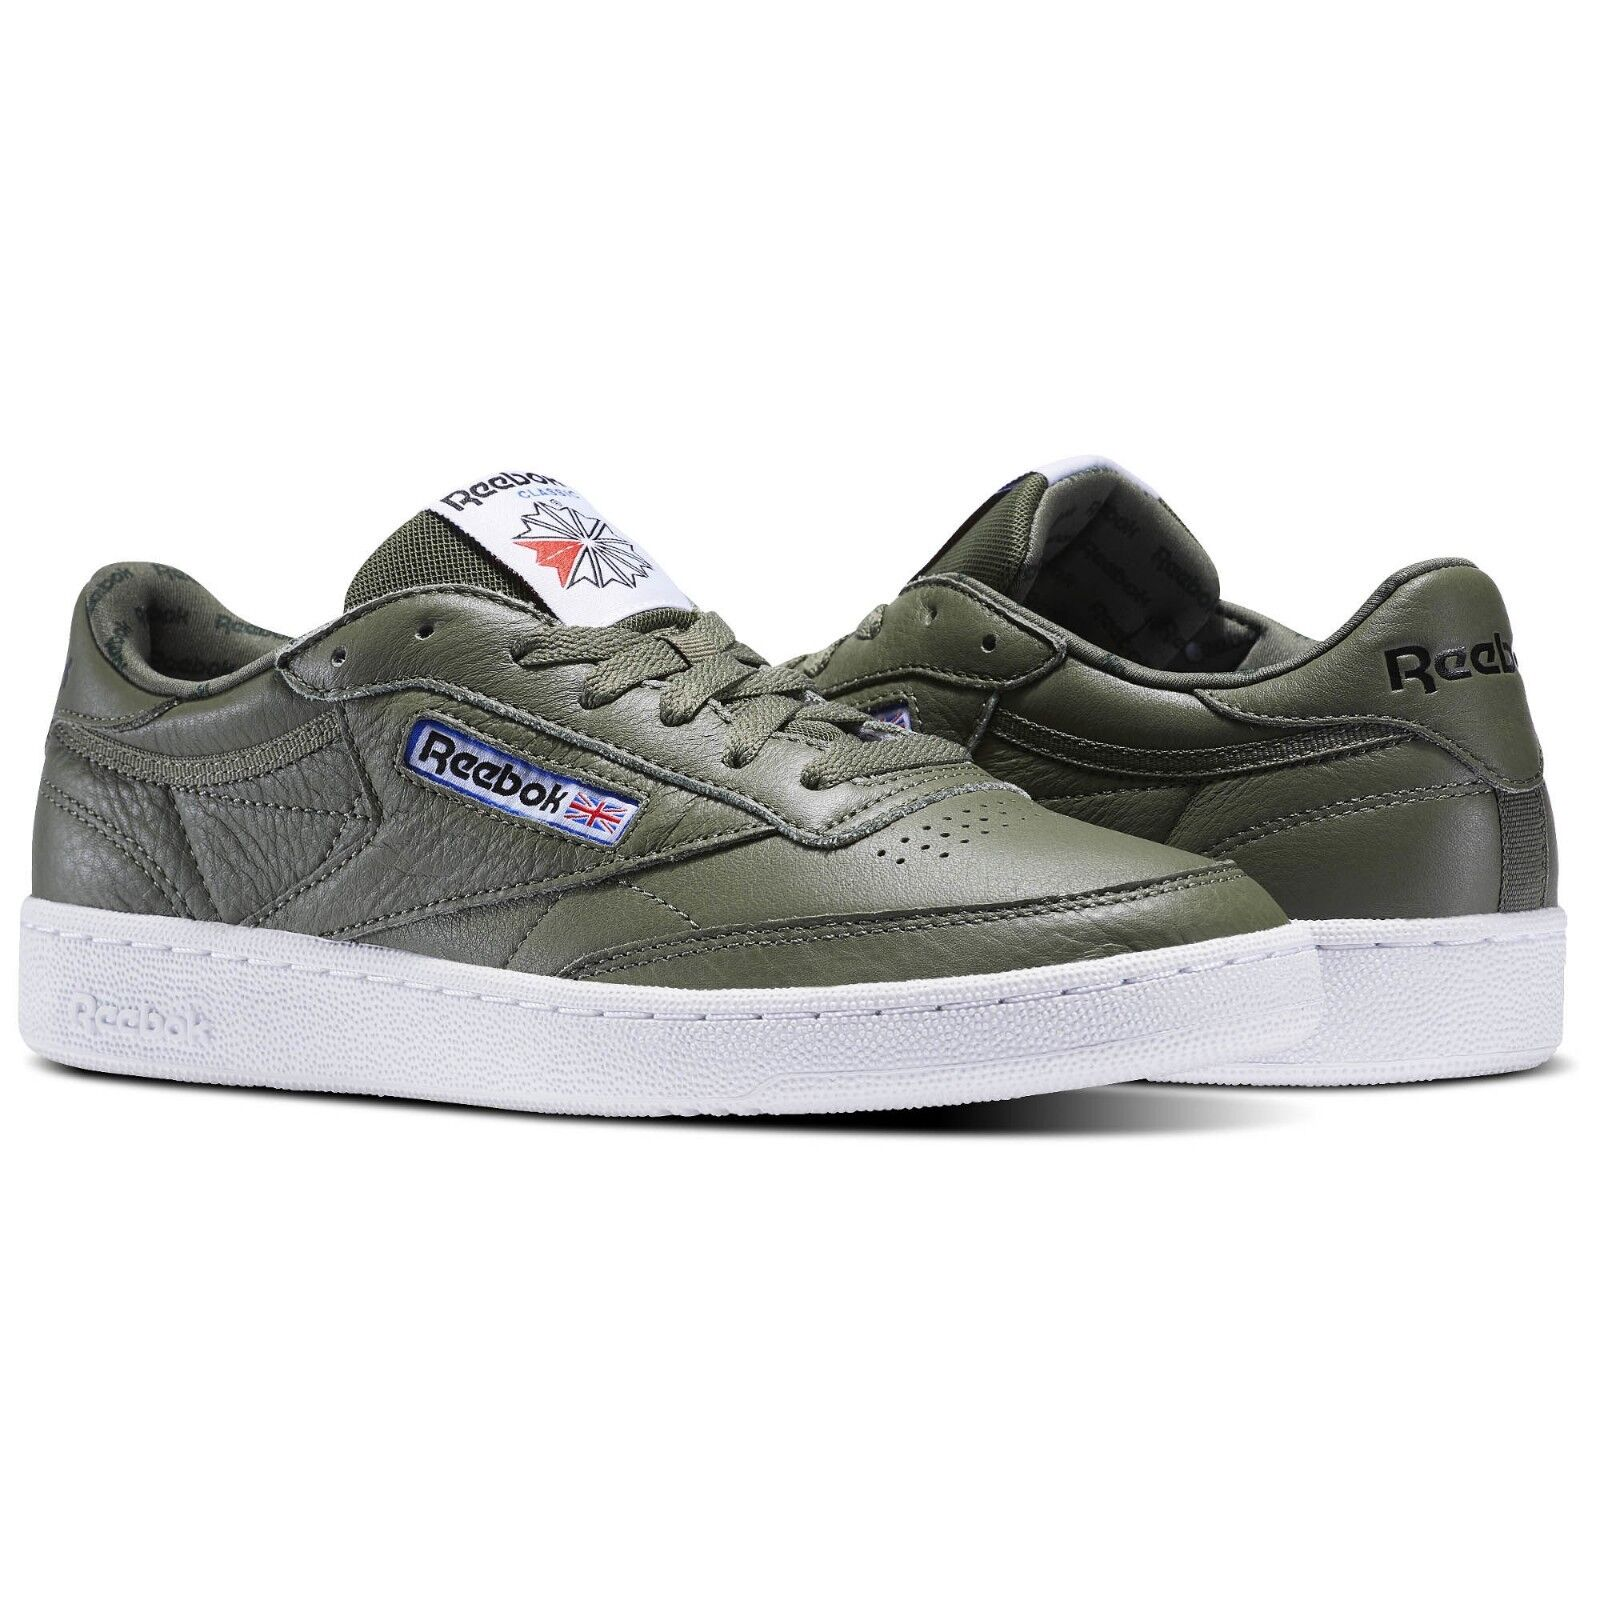 Reebok Club C 85 SO Classic Classic SO Hunter Green BS5211 Taille 10 Retro Tennis Chaussures New d27574